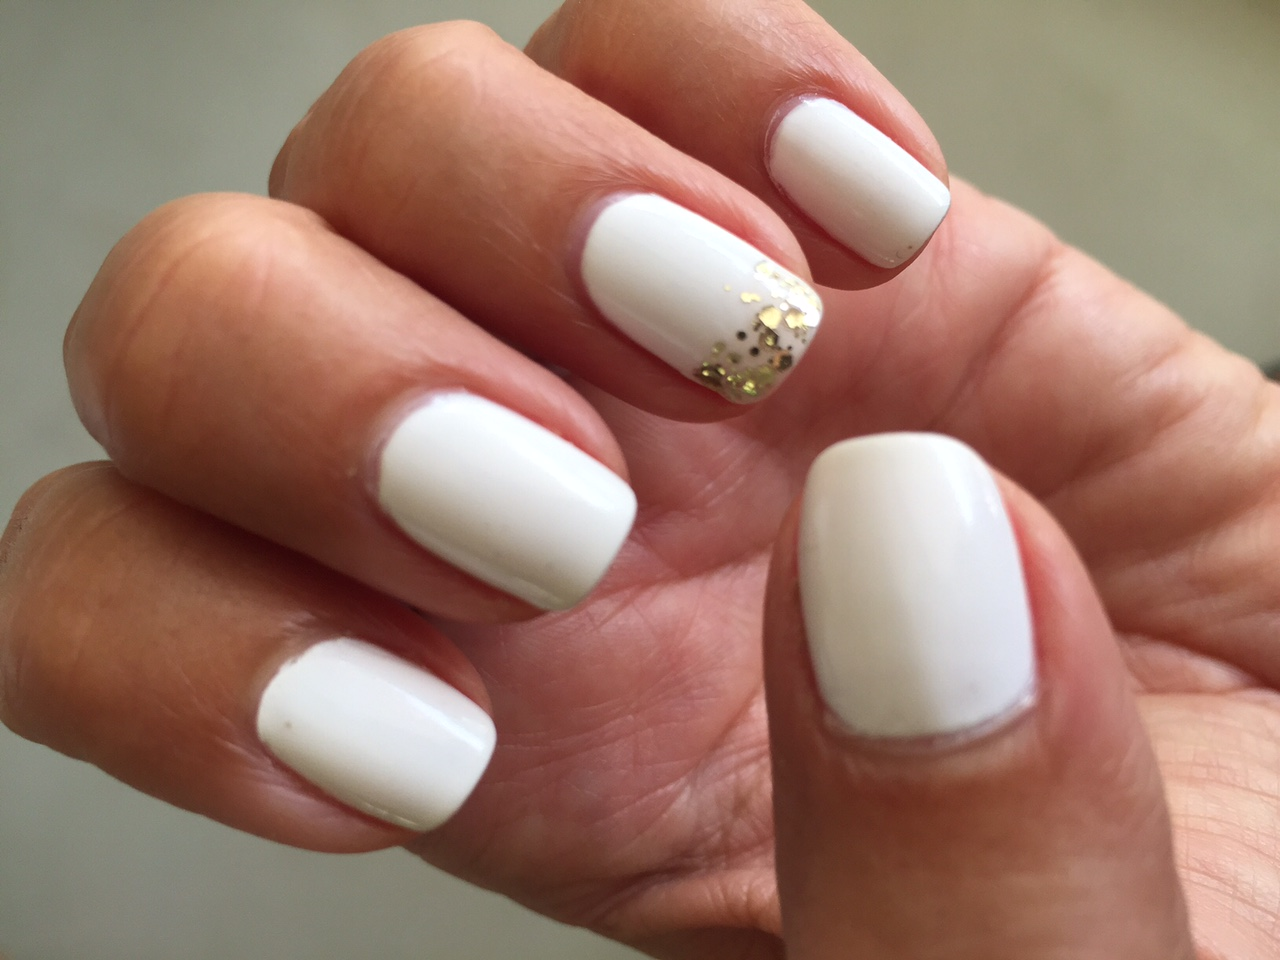 Private Weekend from essie's 2015 Summer Collection with a Touch of Rock at the Top also by essie.